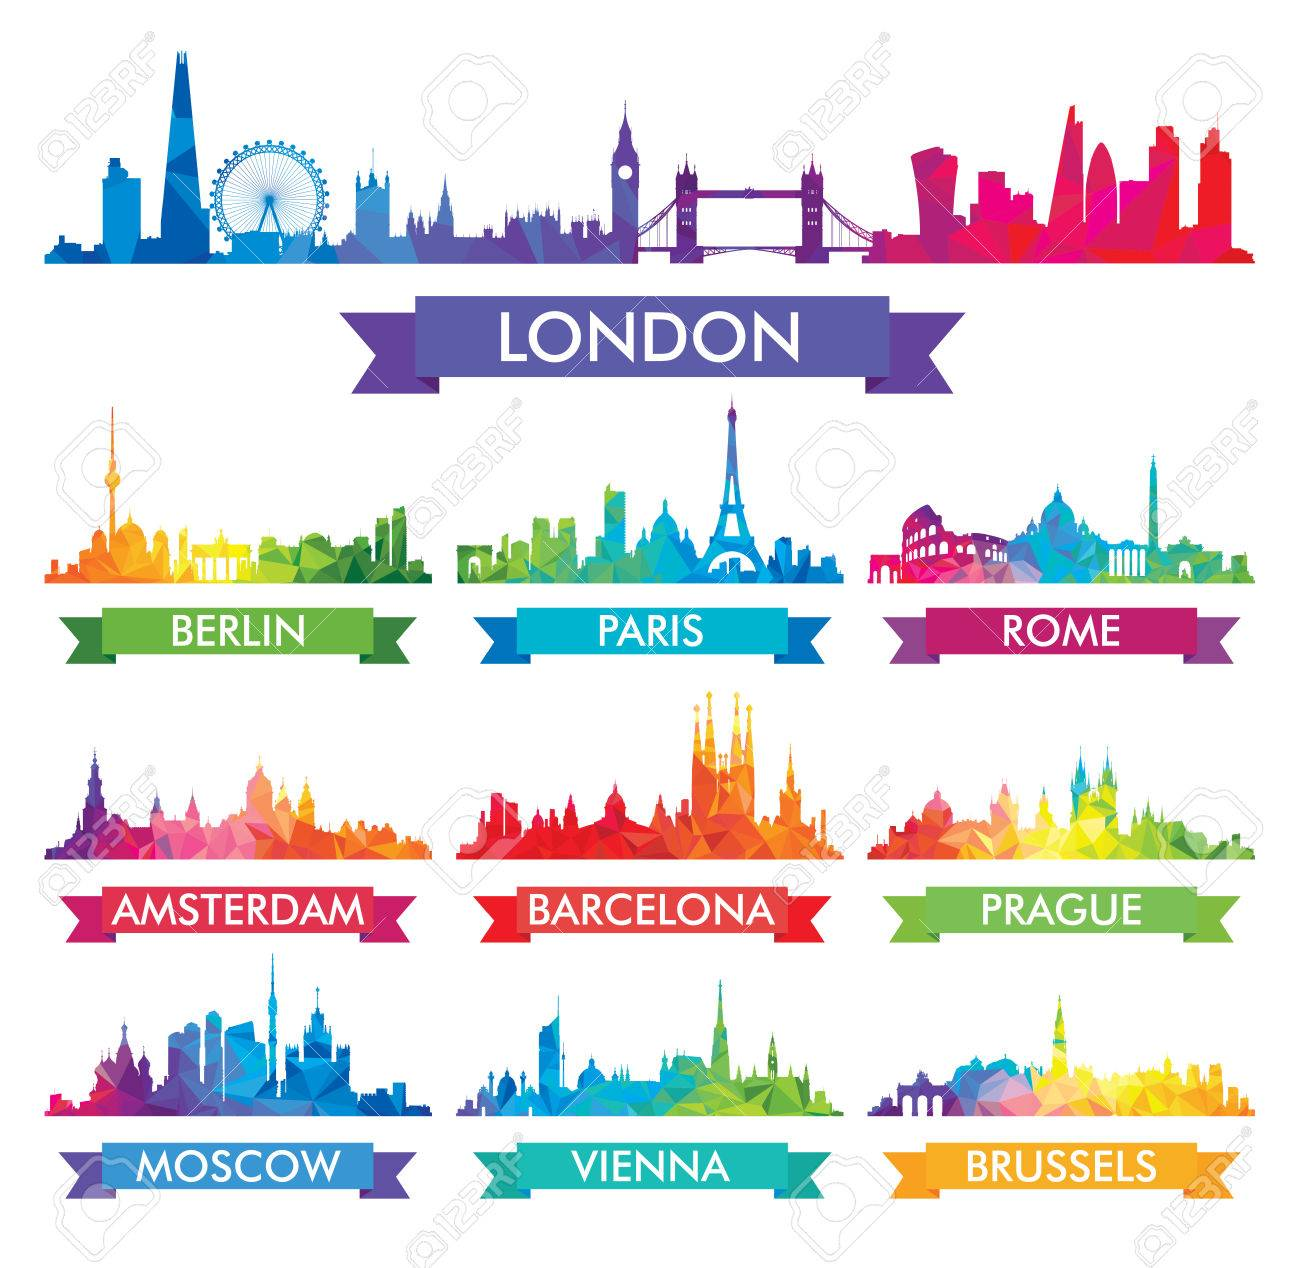 City skyline of Europe Colorful vector illustration - 70605386